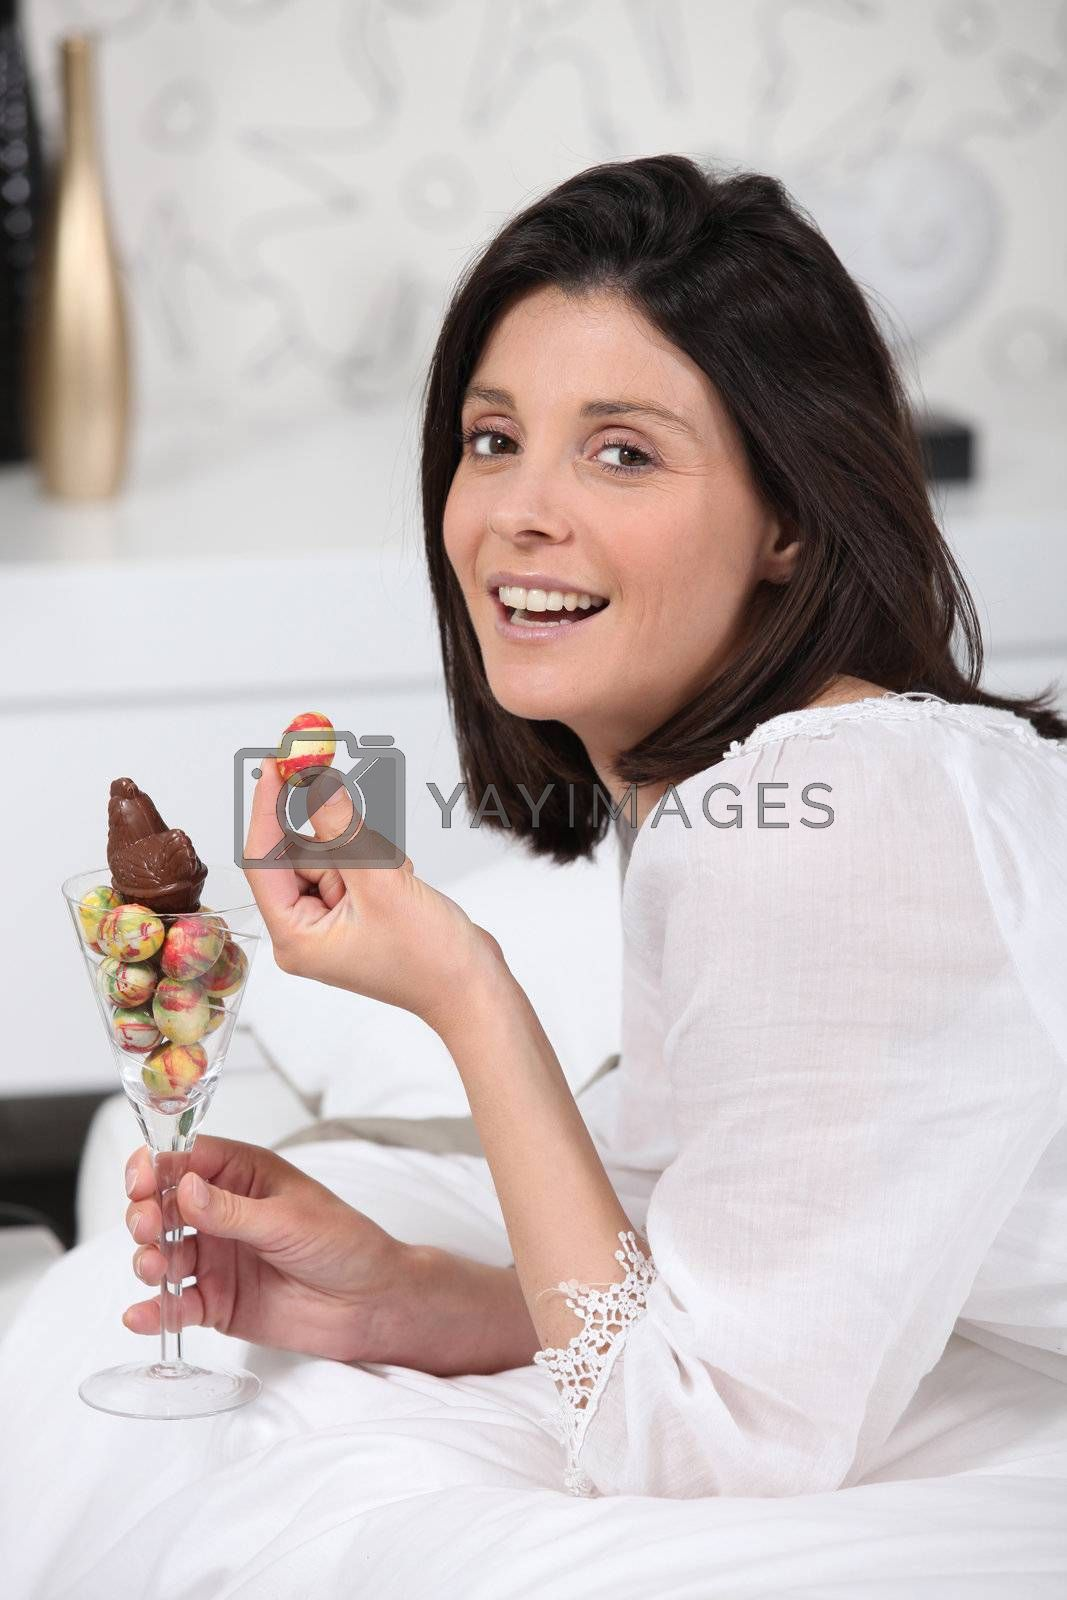 Woman eating Easter chocolate